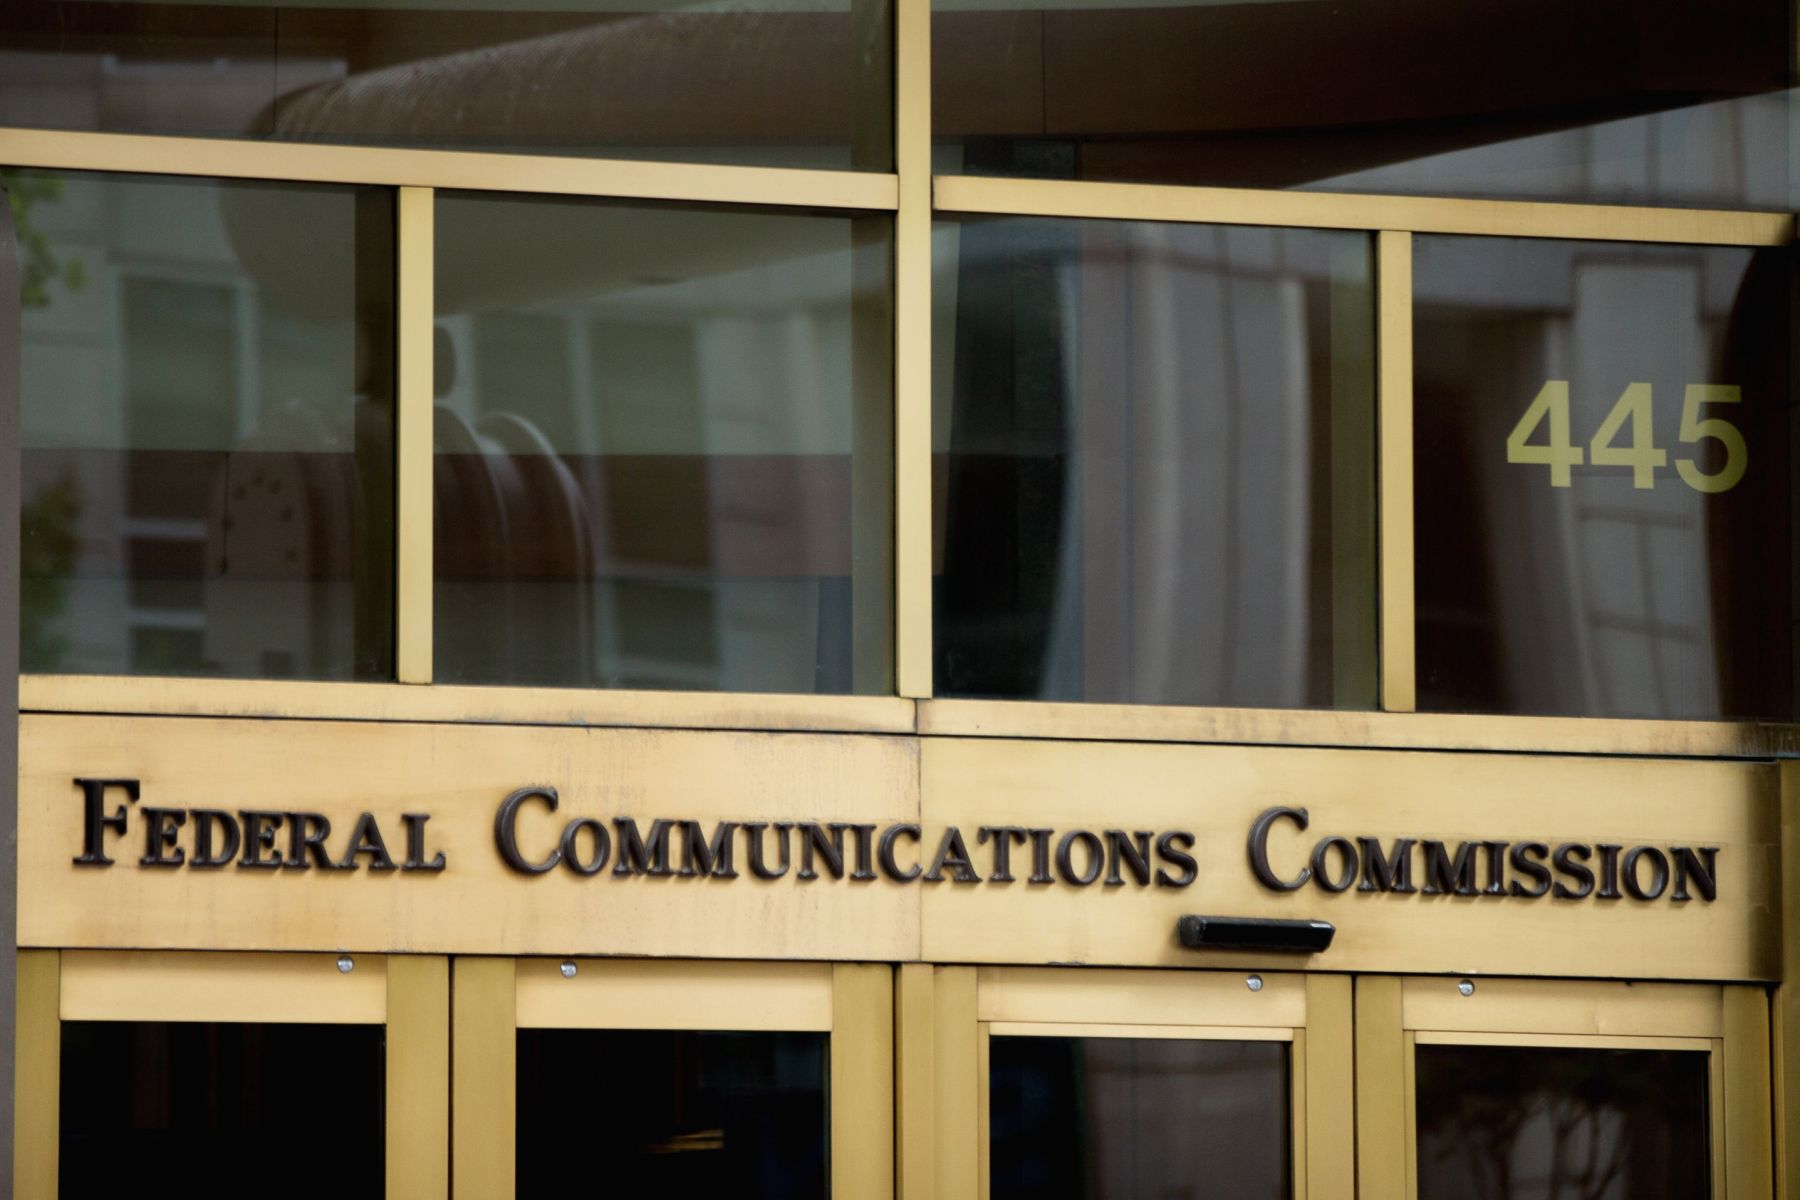 """The entrance to the Federal Communications Commission (FCC) building in Washington. The government's latest push to make sure consumers get equal access to the Internet faced a key legal test Friday as a federal appeals court considered whether to treat high-speed service providers as though they are public utilities. But two judges hearing more than three hours of technical arguments in the case seemed at times sympathetic to government attorneys arguing that the FCC was within its authority when it approved """"net neutrality"""" rules in FebruaryNet Neutrality, Washington, USA"""